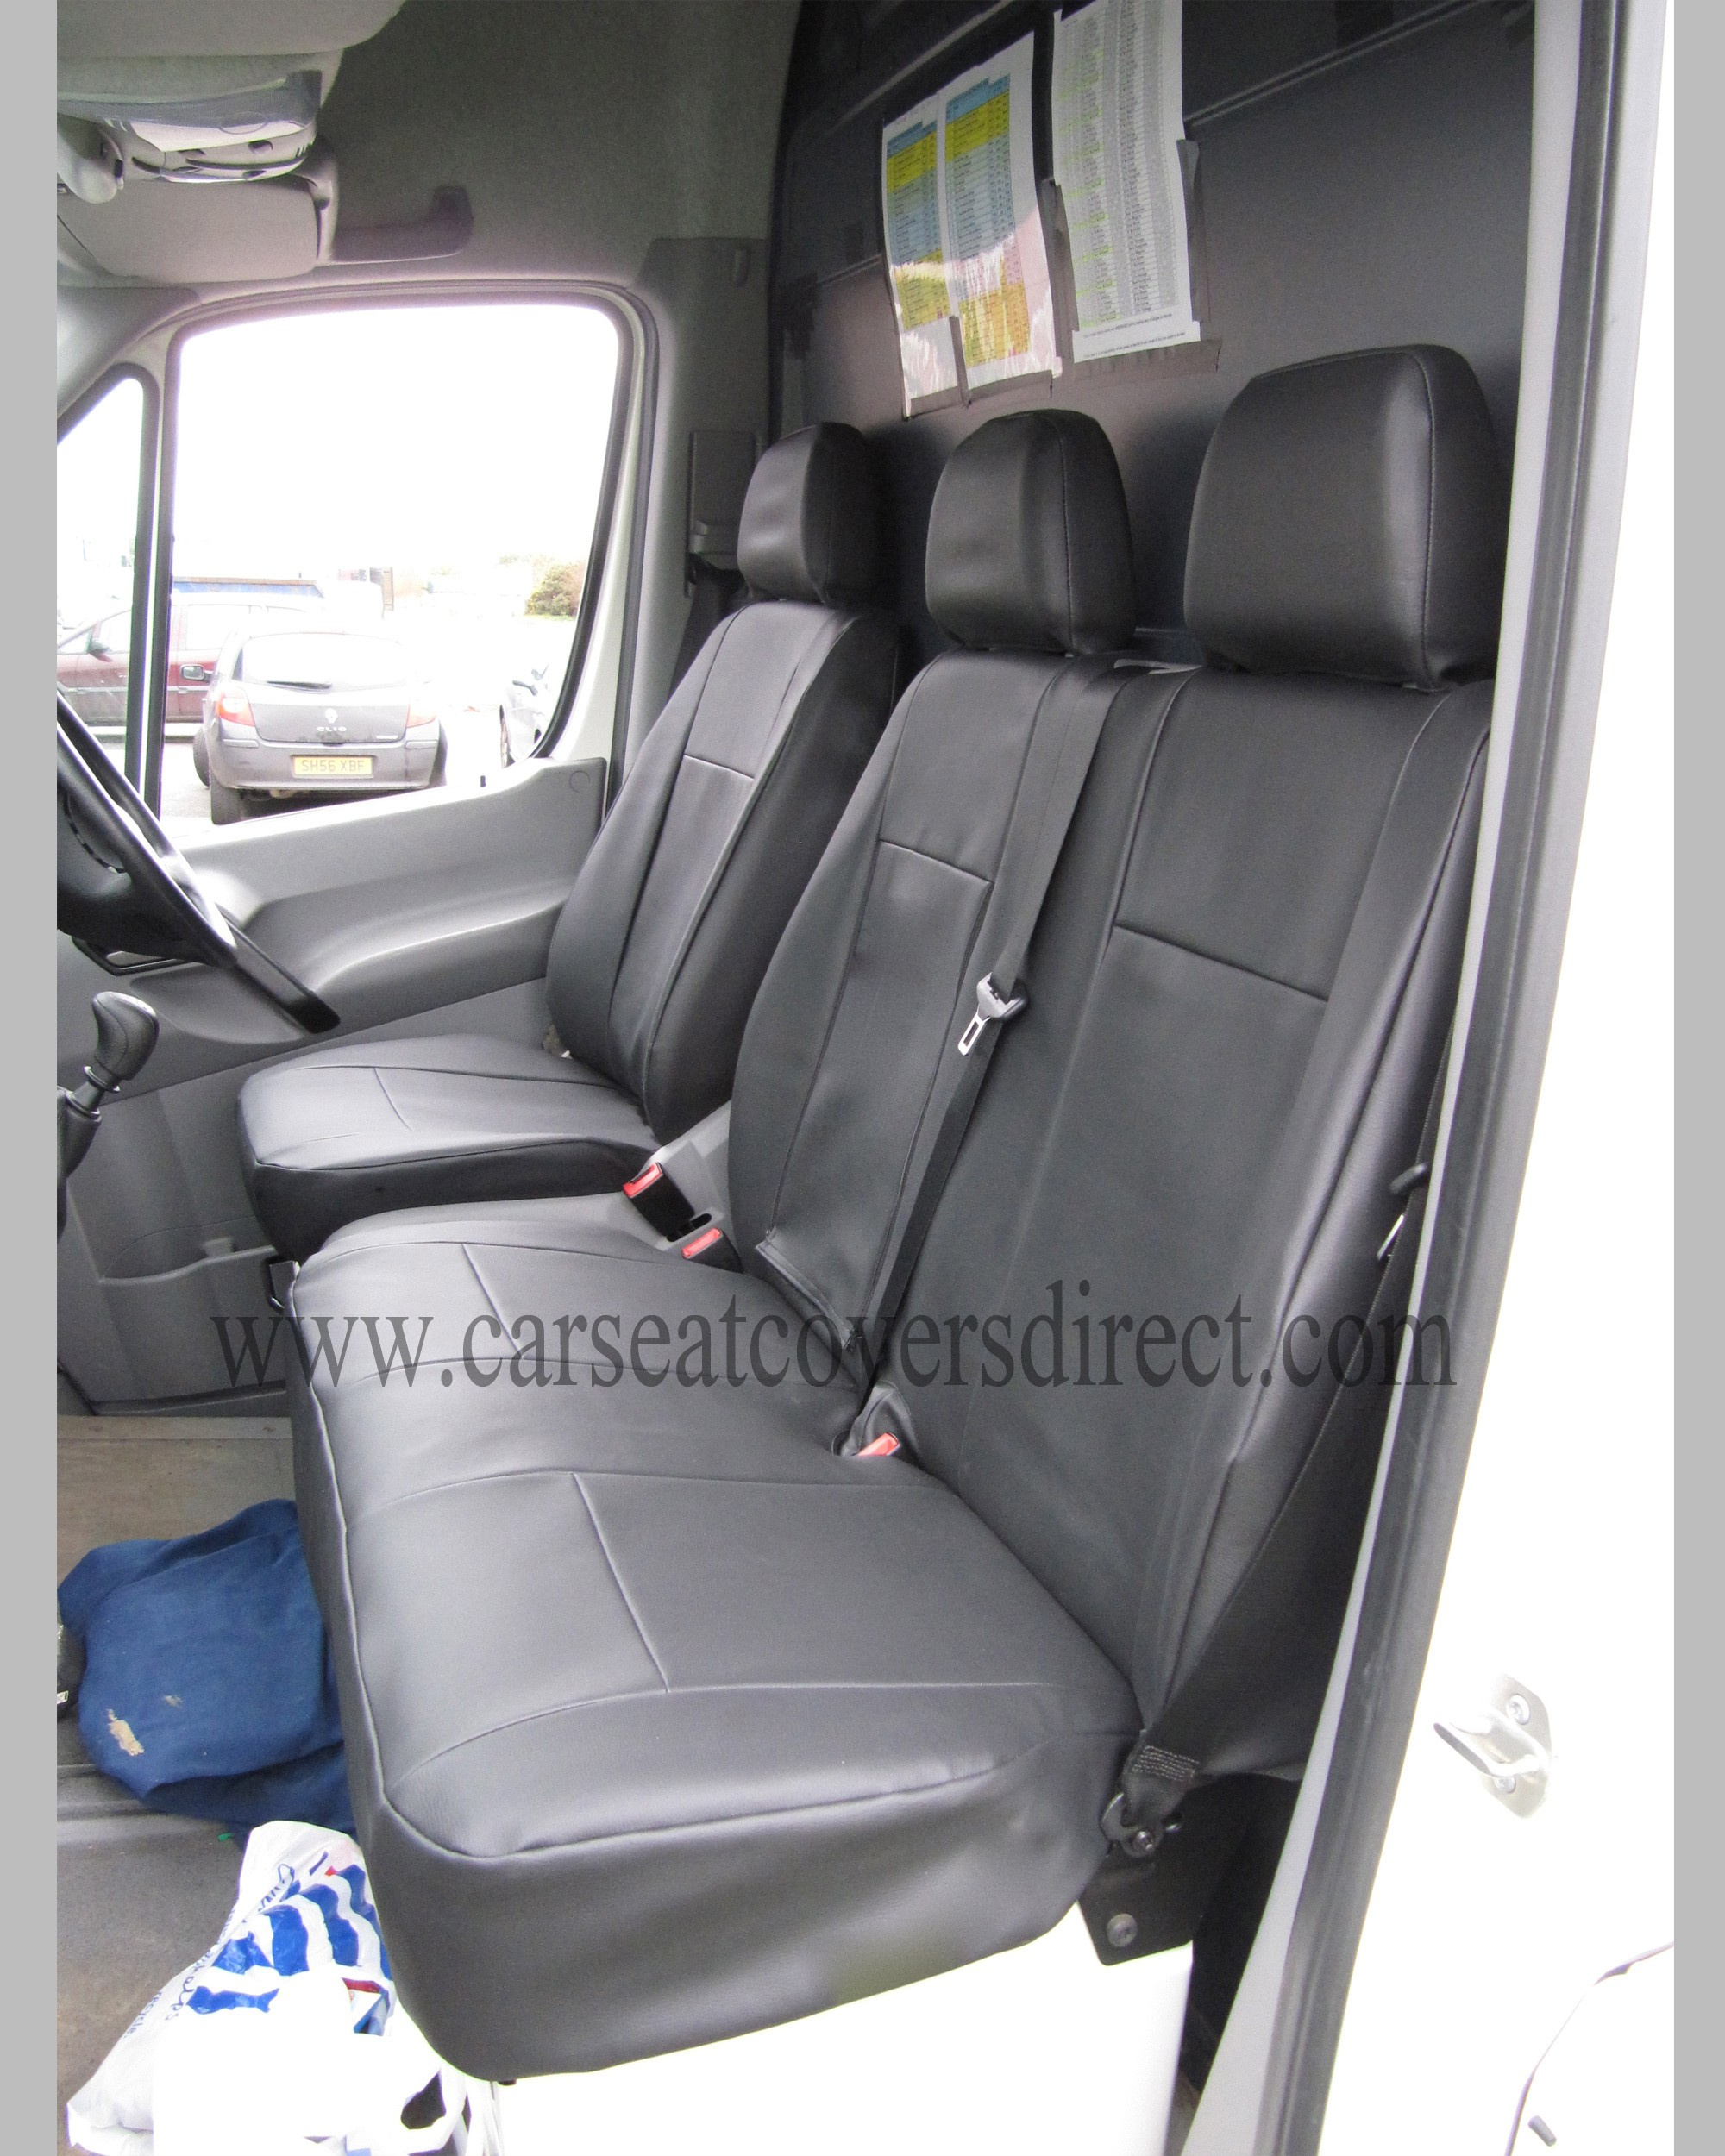 volkswagen vw crafter black seat covers car seat covers direct tailored to your choice. Black Bedroom Furniture Sets. Home Design Ideas